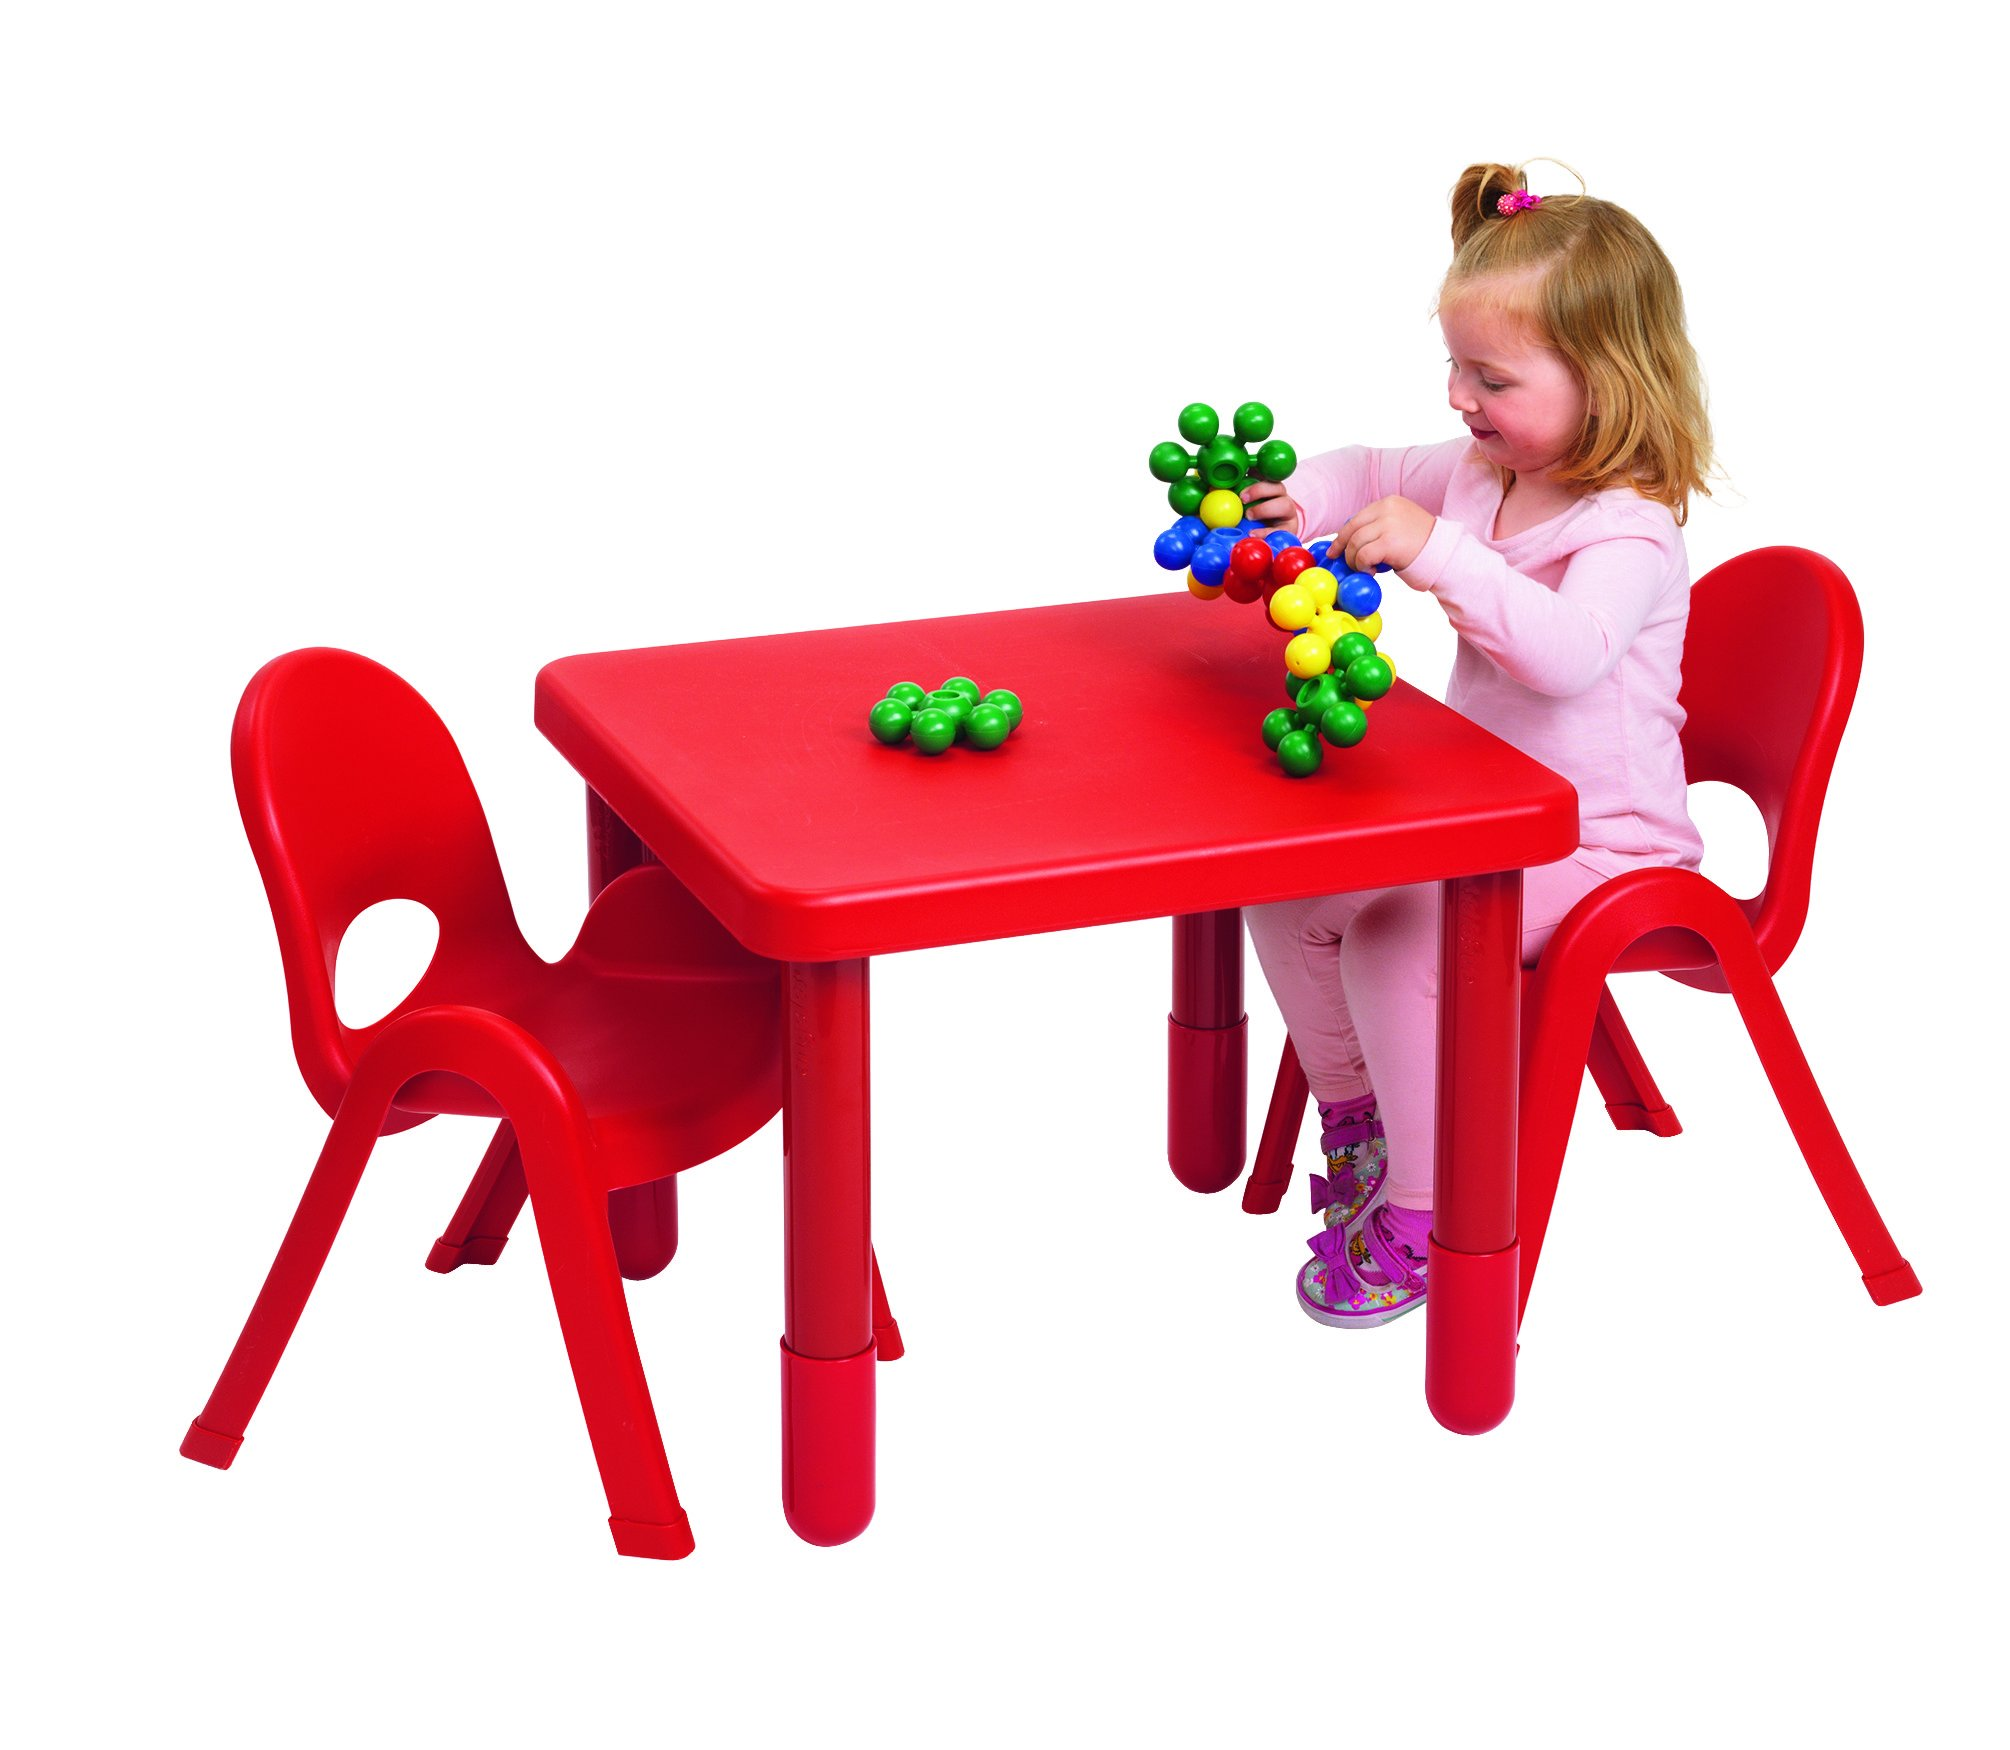 Angeles MyValue Candy Apple Red Table and Chair (Set of 2)